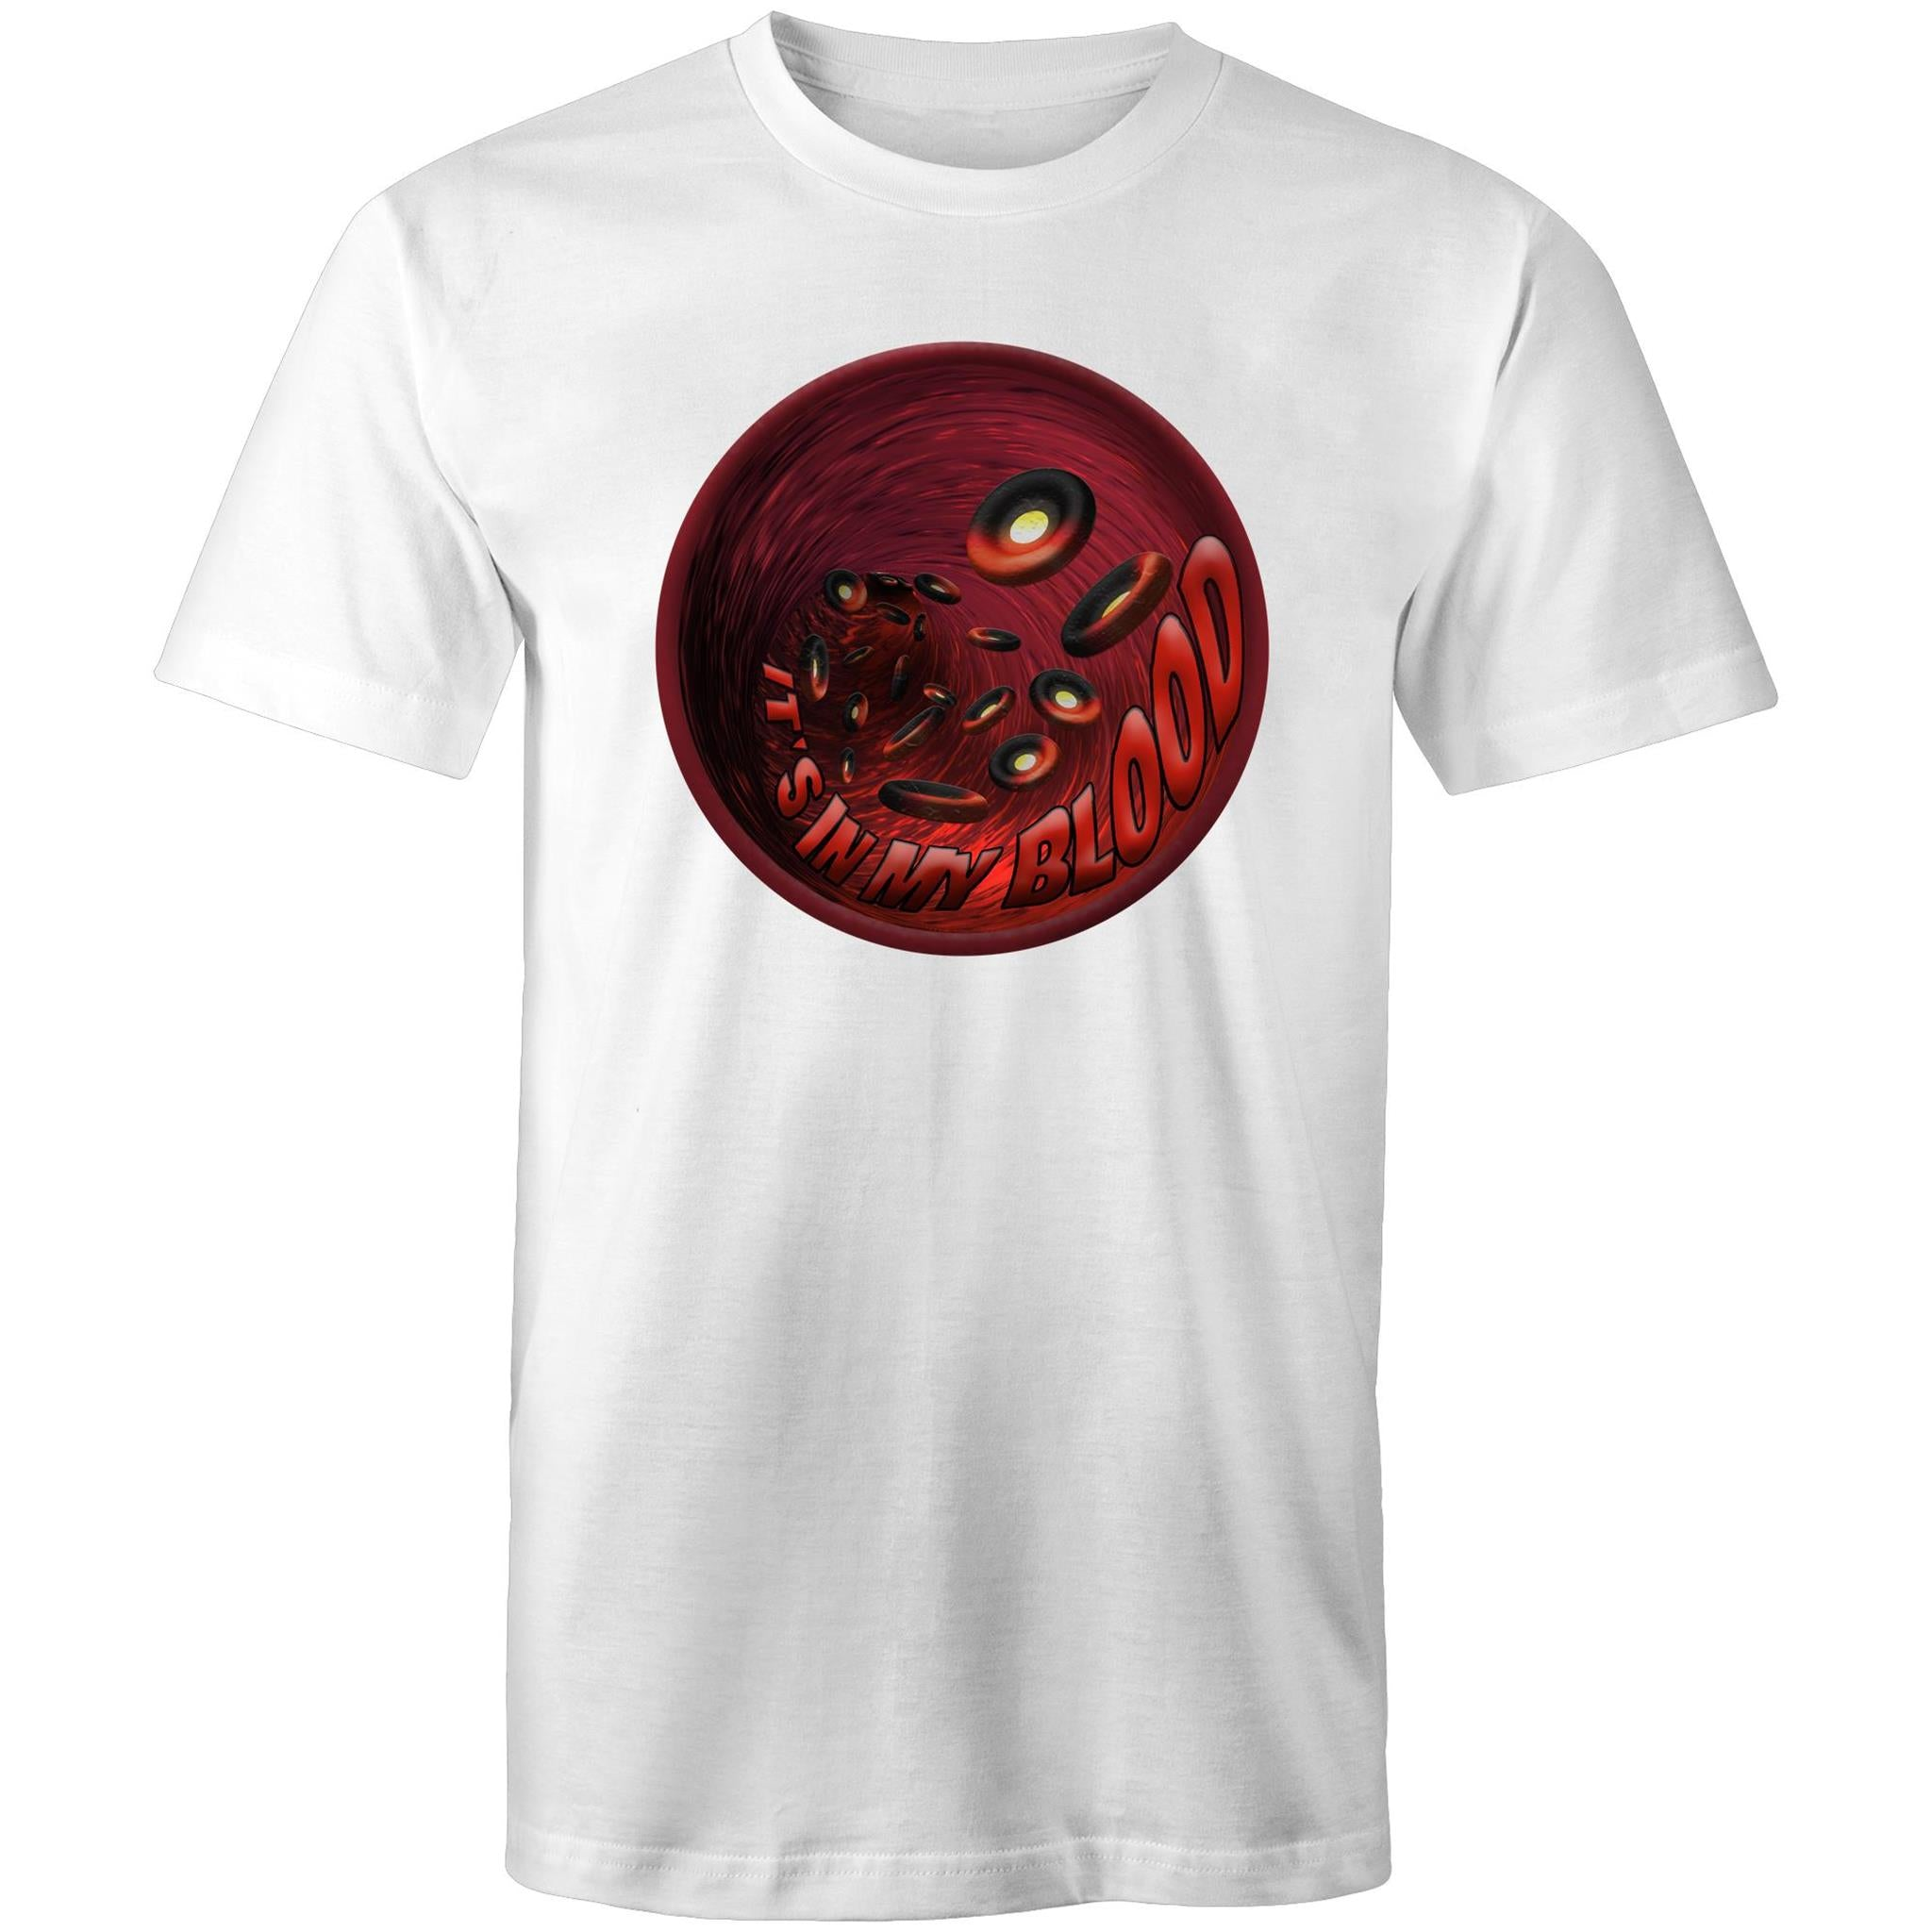 'It's In My Blood' New Dawn - T-Shirt